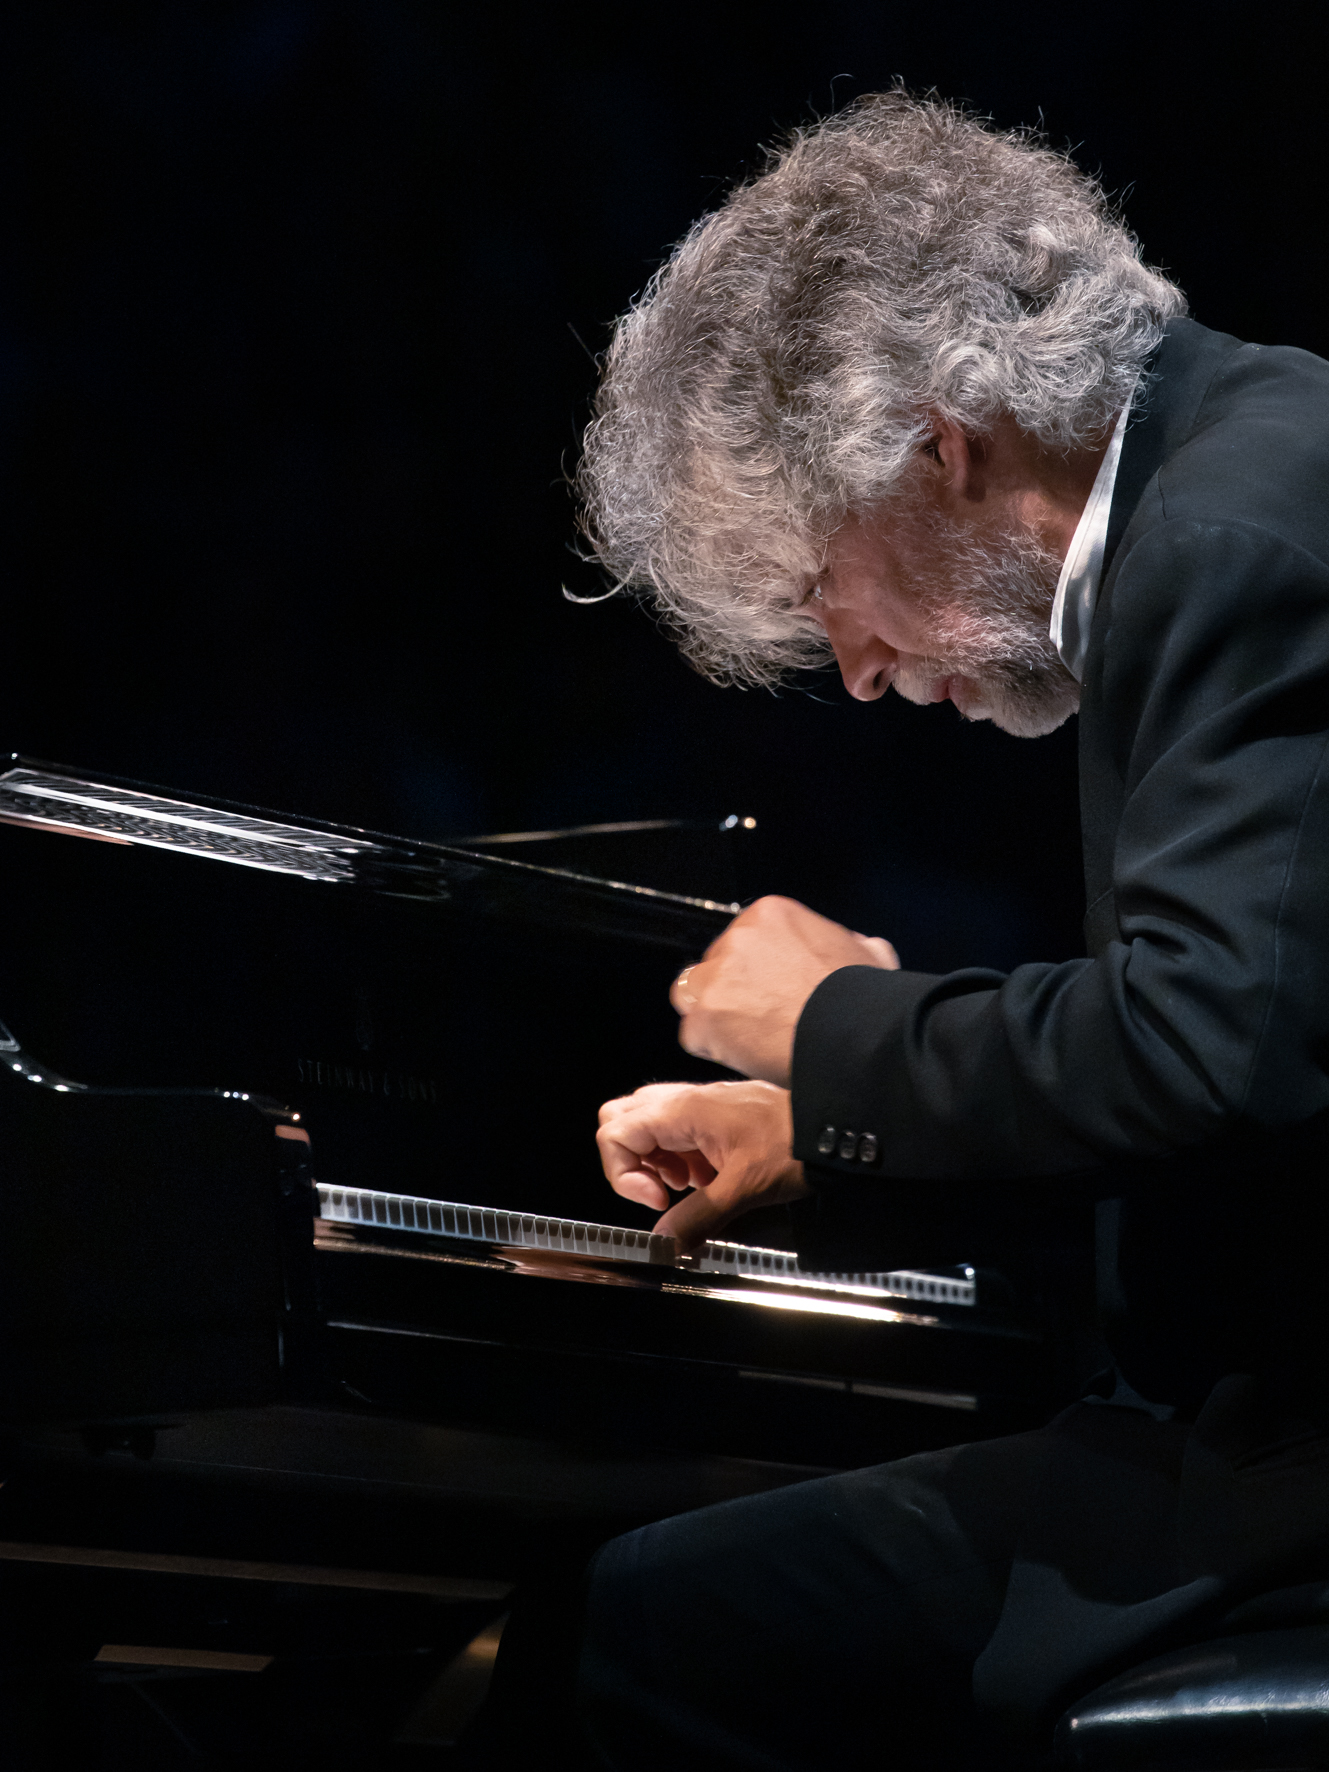 concert piano critique classiquenews Guy_© Christophe GREMIOT_17082019-6